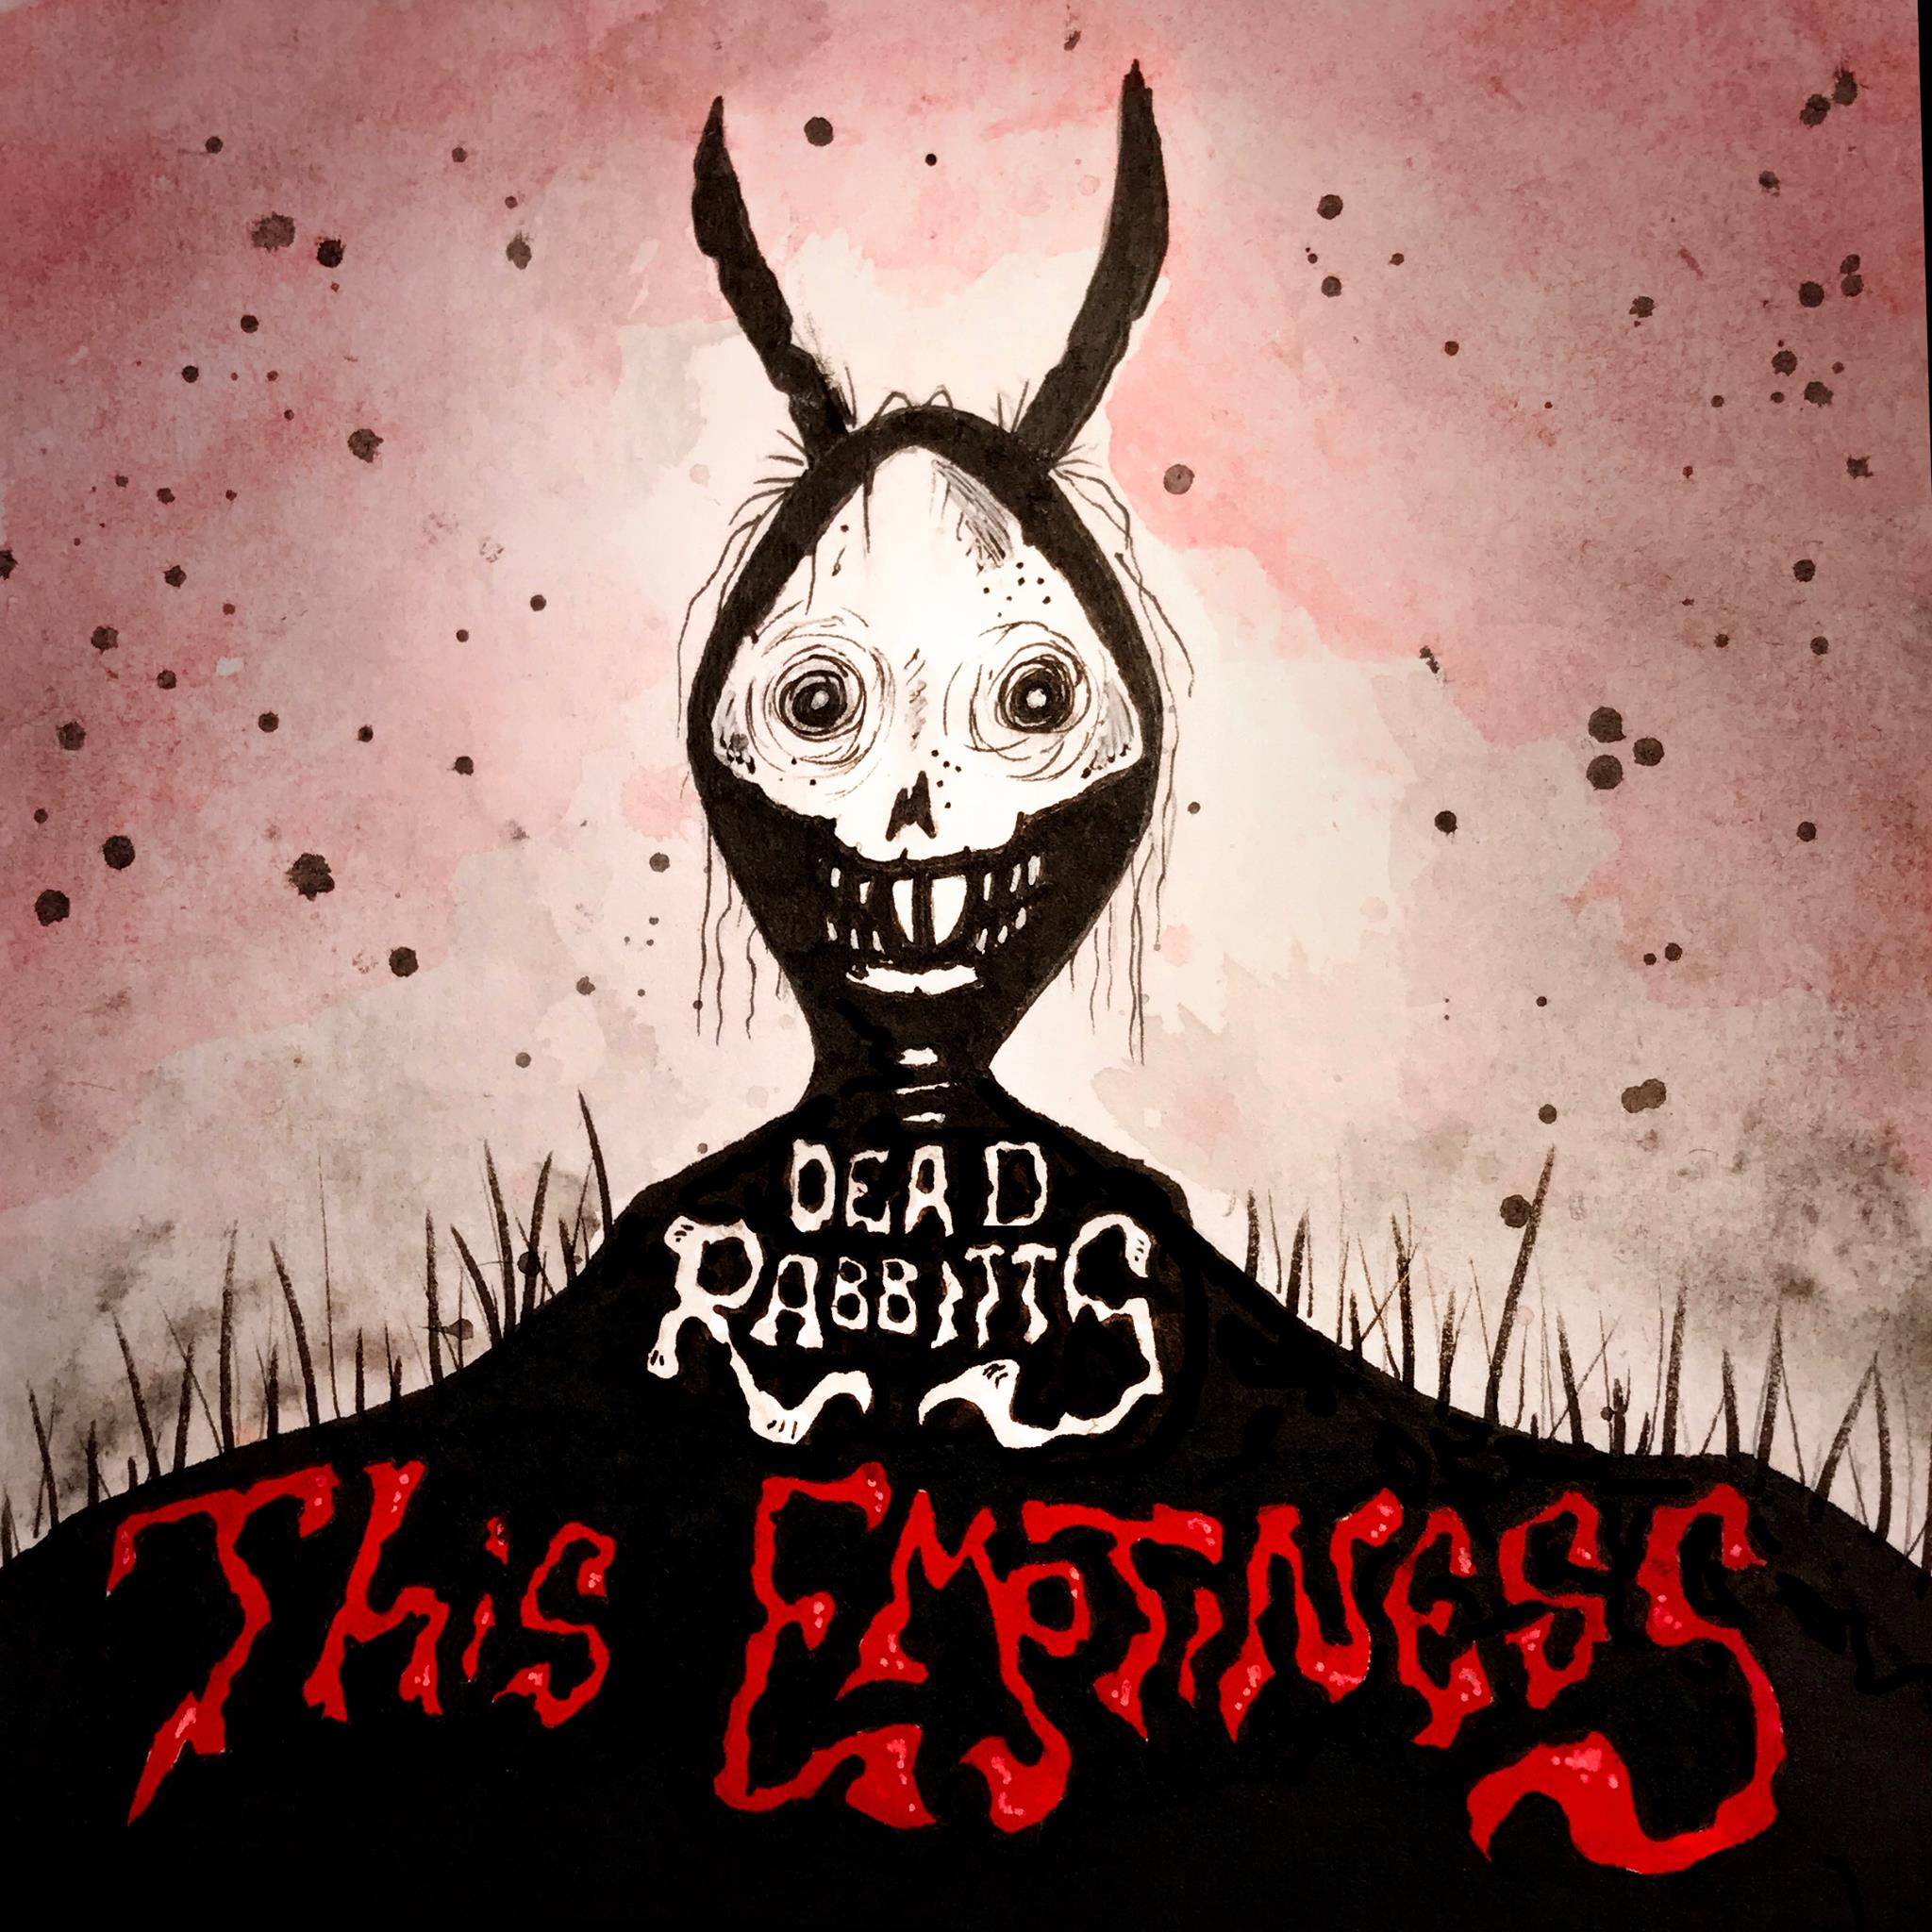 The Dead Rabbitts - This Emptiness [single] (2017)